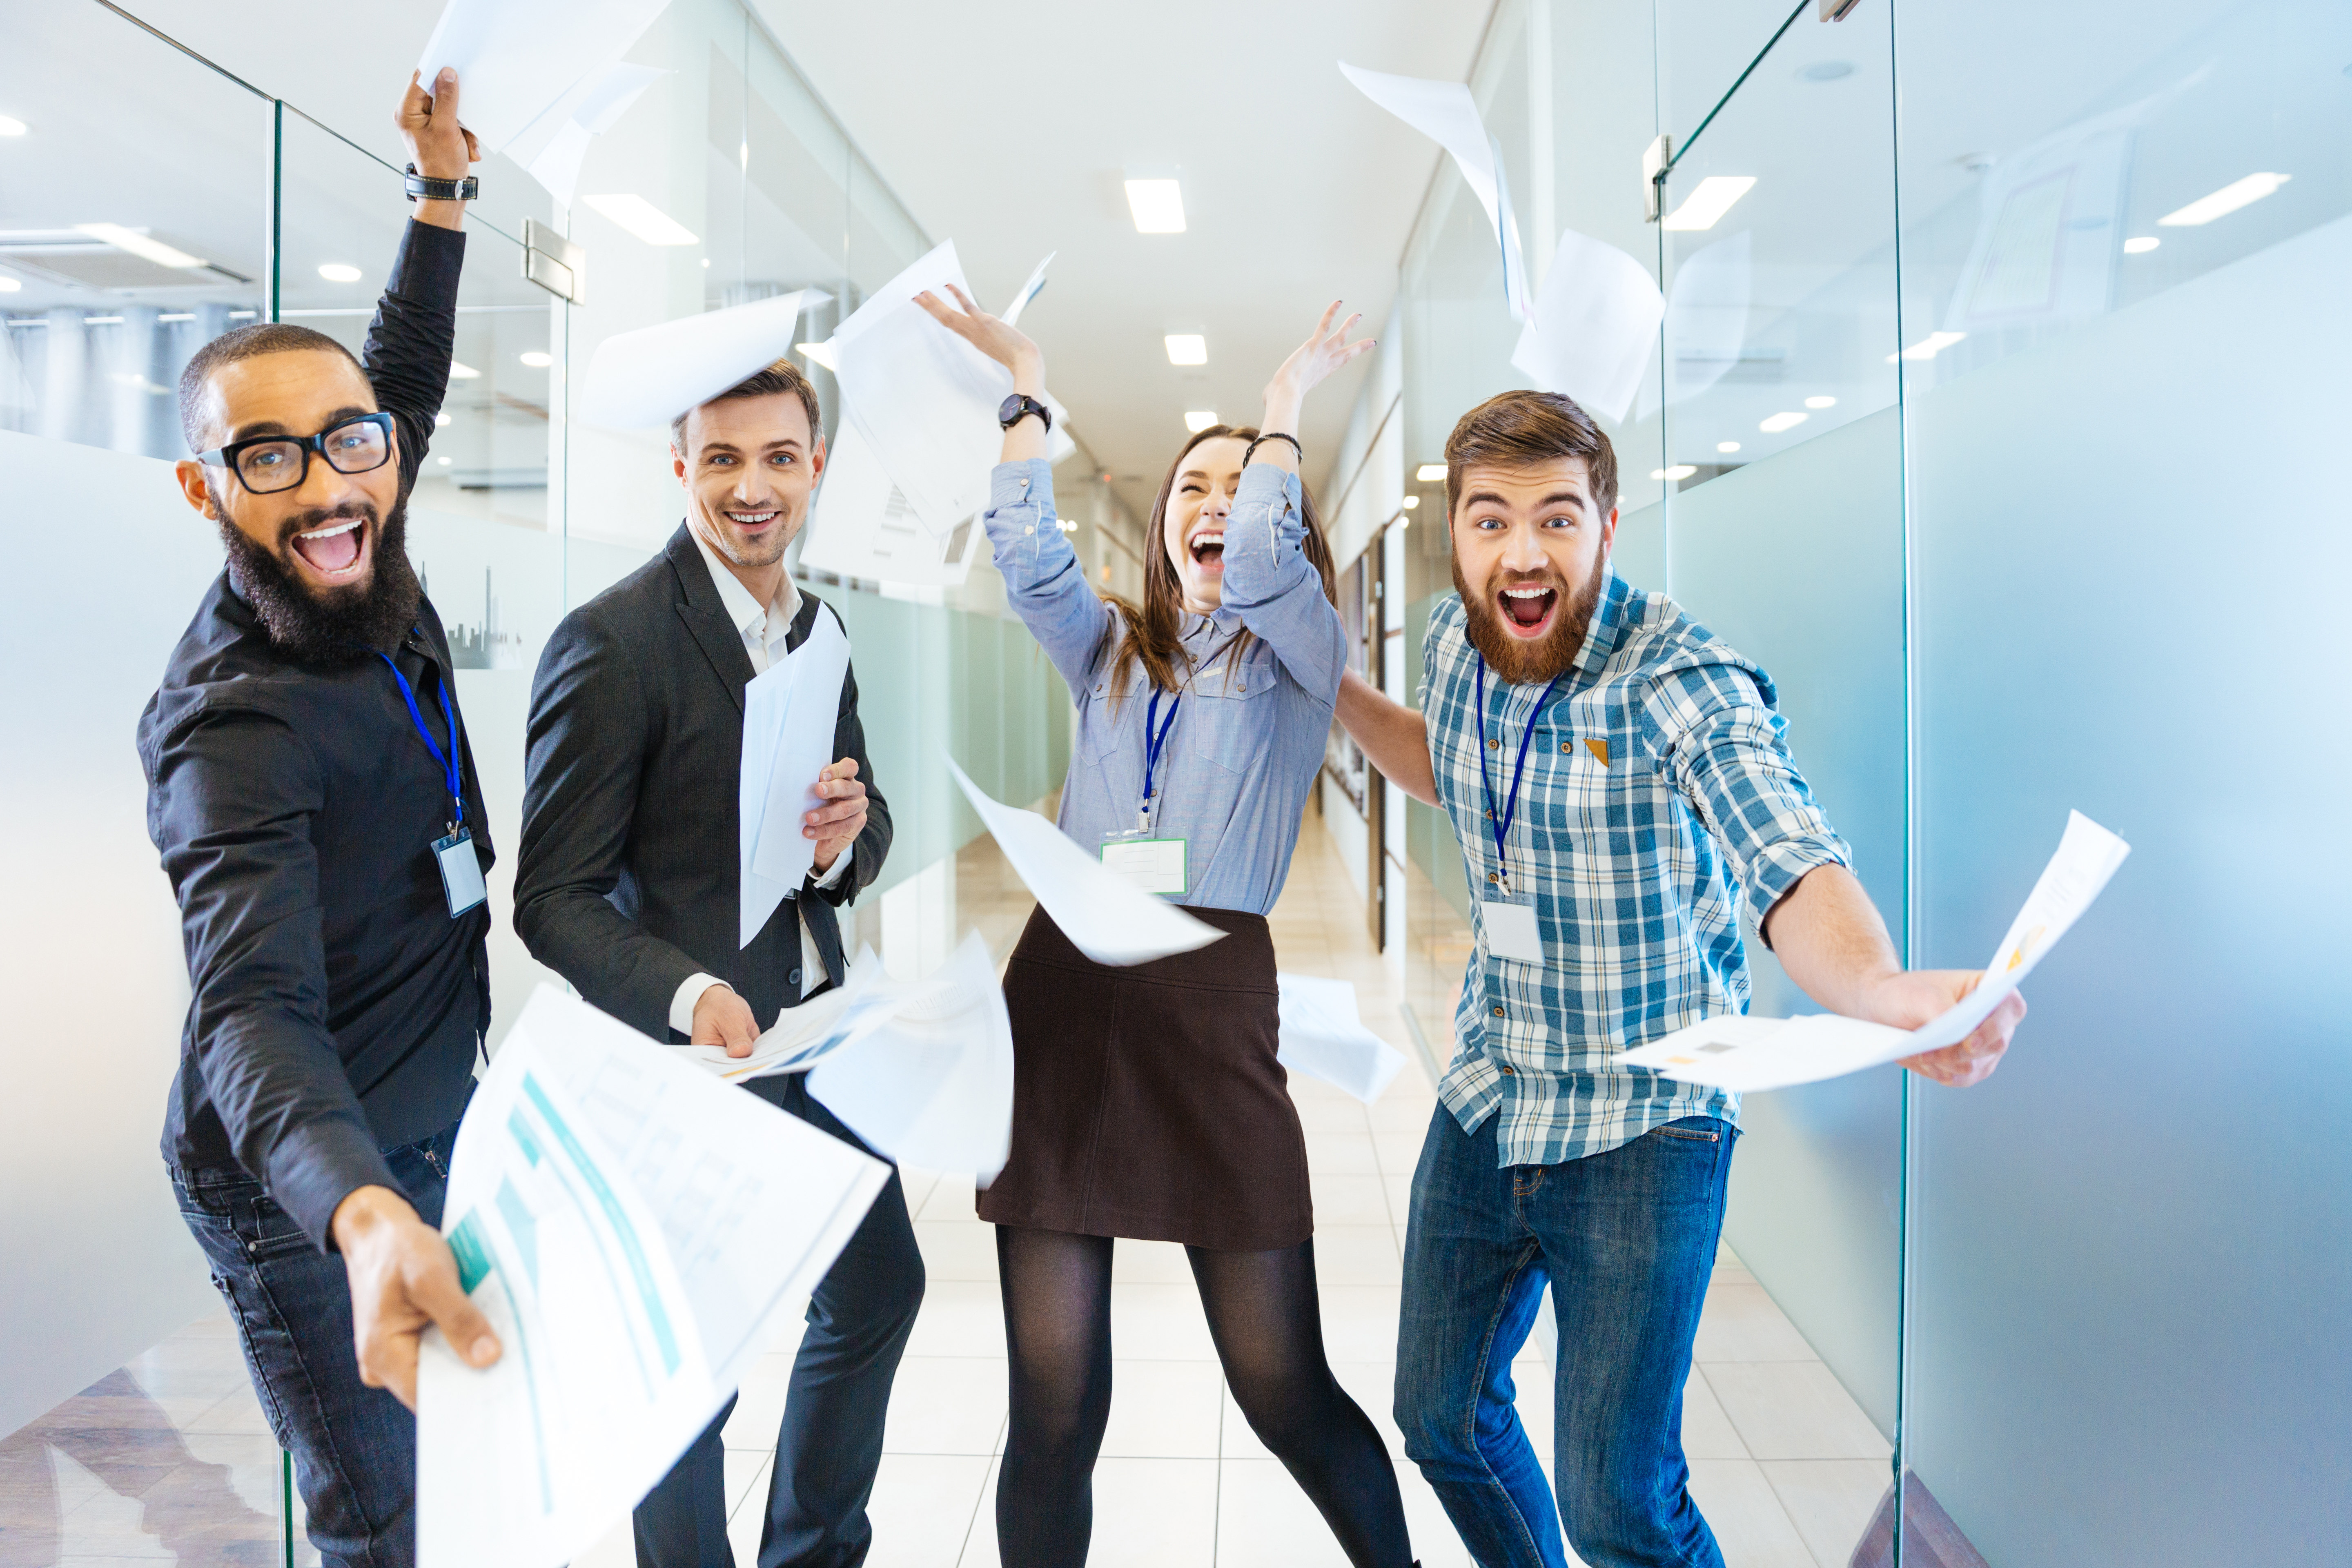 Group of joyful excited business people throwing papers and having fun